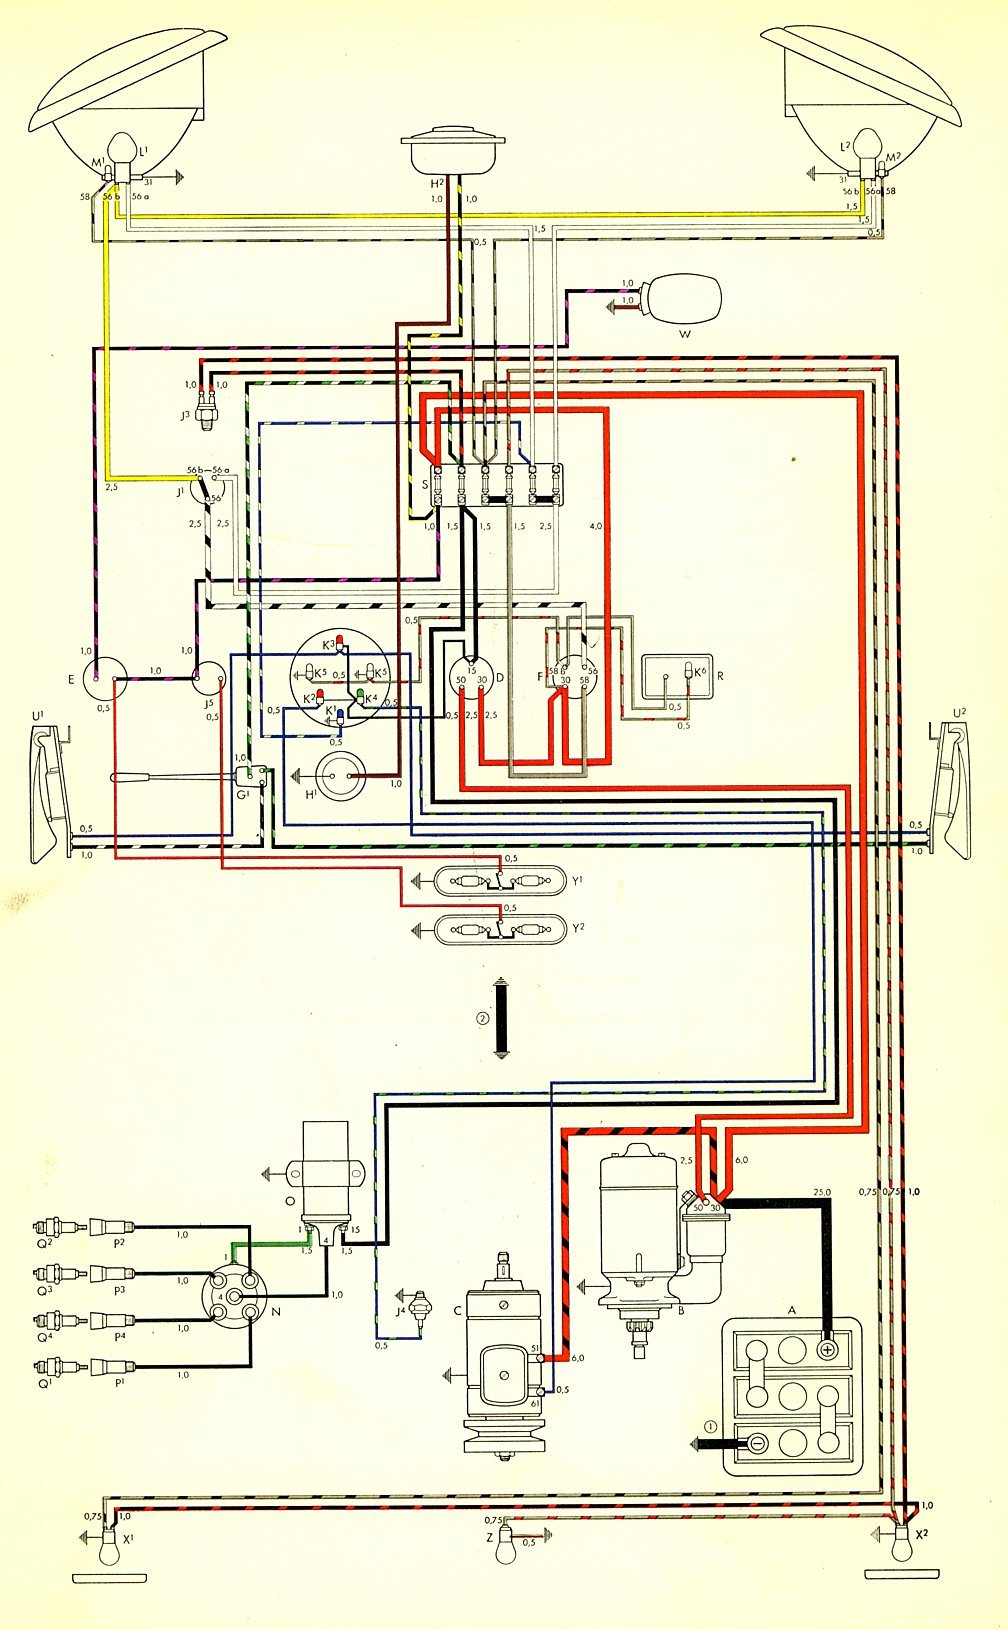 1976 cutlass wiring diagram [wrg-5951] 1976 cutlass wiring diagram